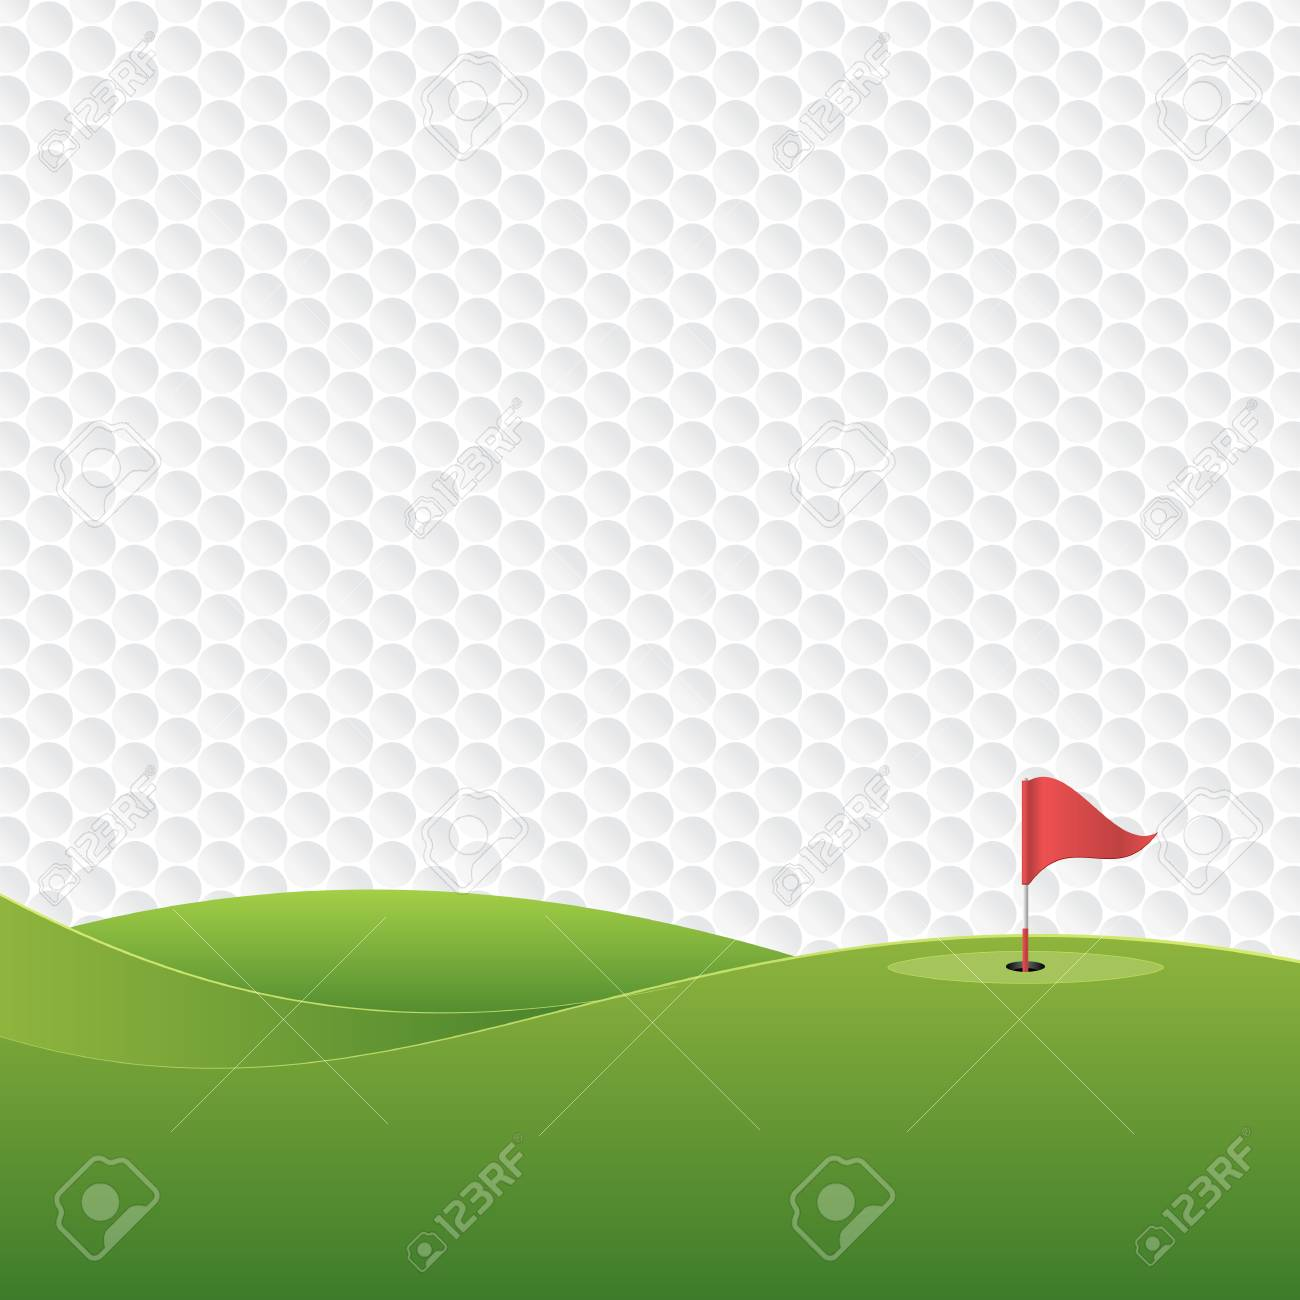 Golf background. Golf course with a hole and a flag. Vector illustration. - 90525291